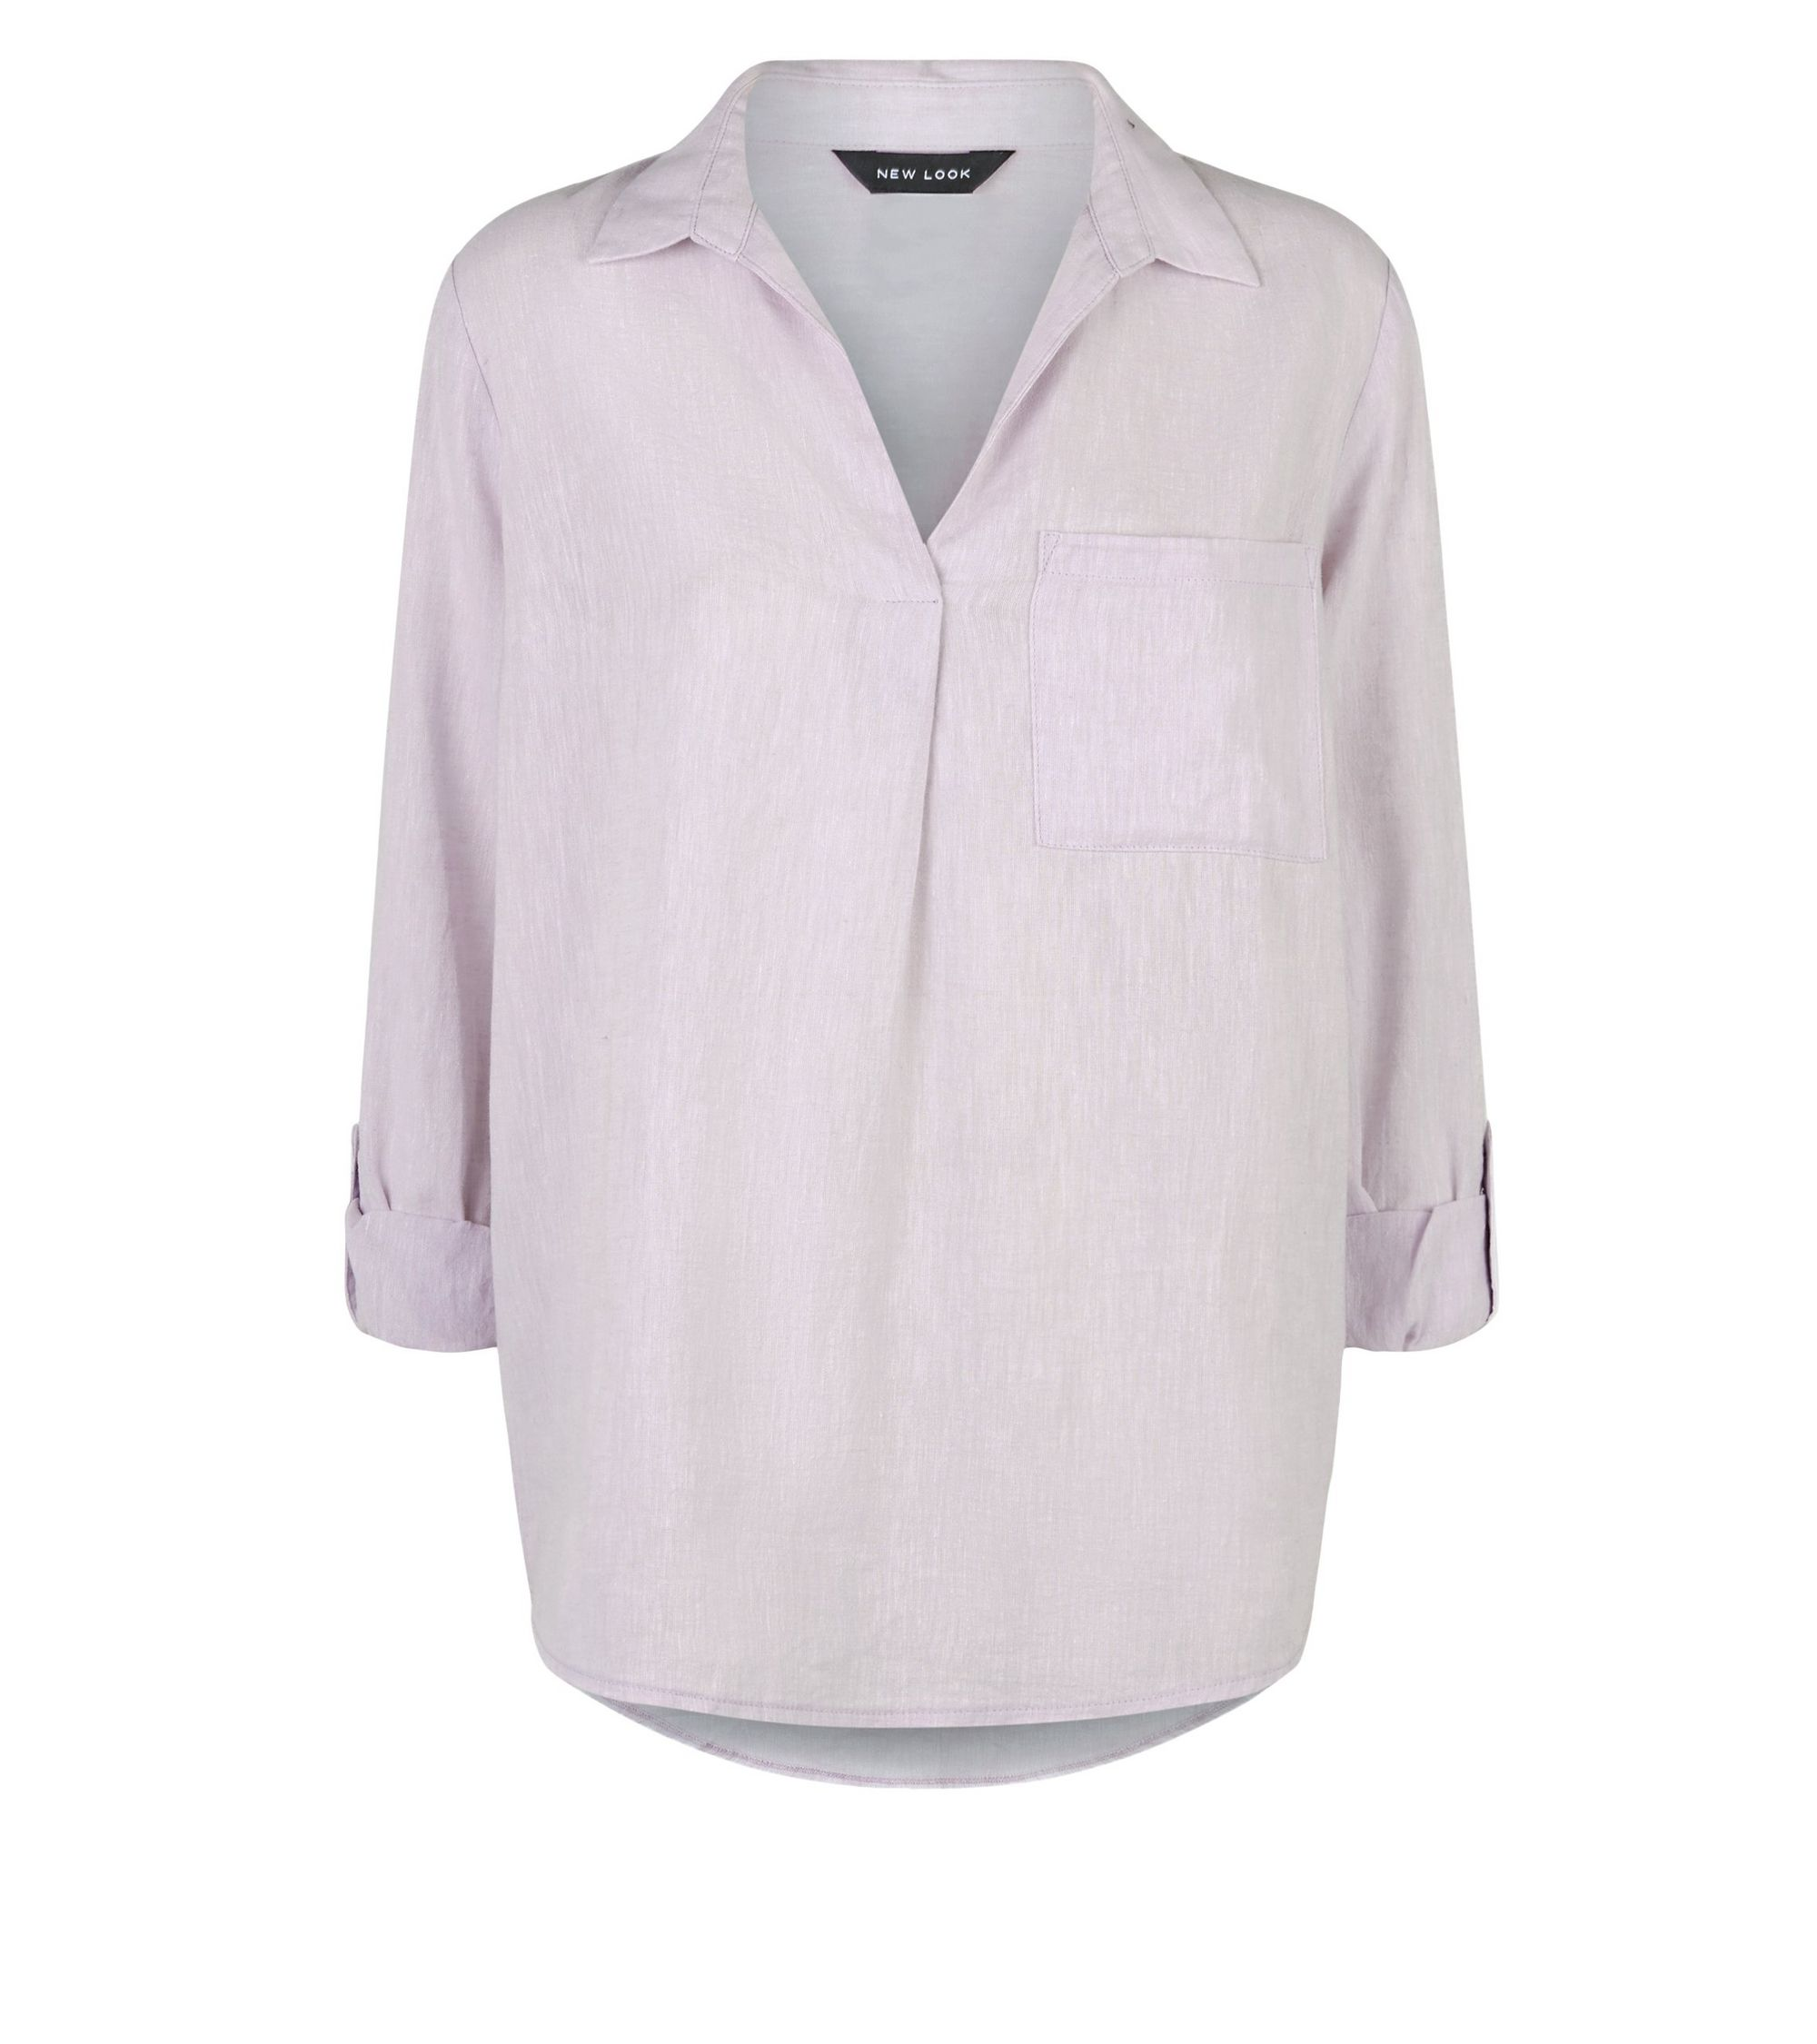 c91947b25ce29a New Look Linen Blend Overhead Shirt at £15.99 | love the brands